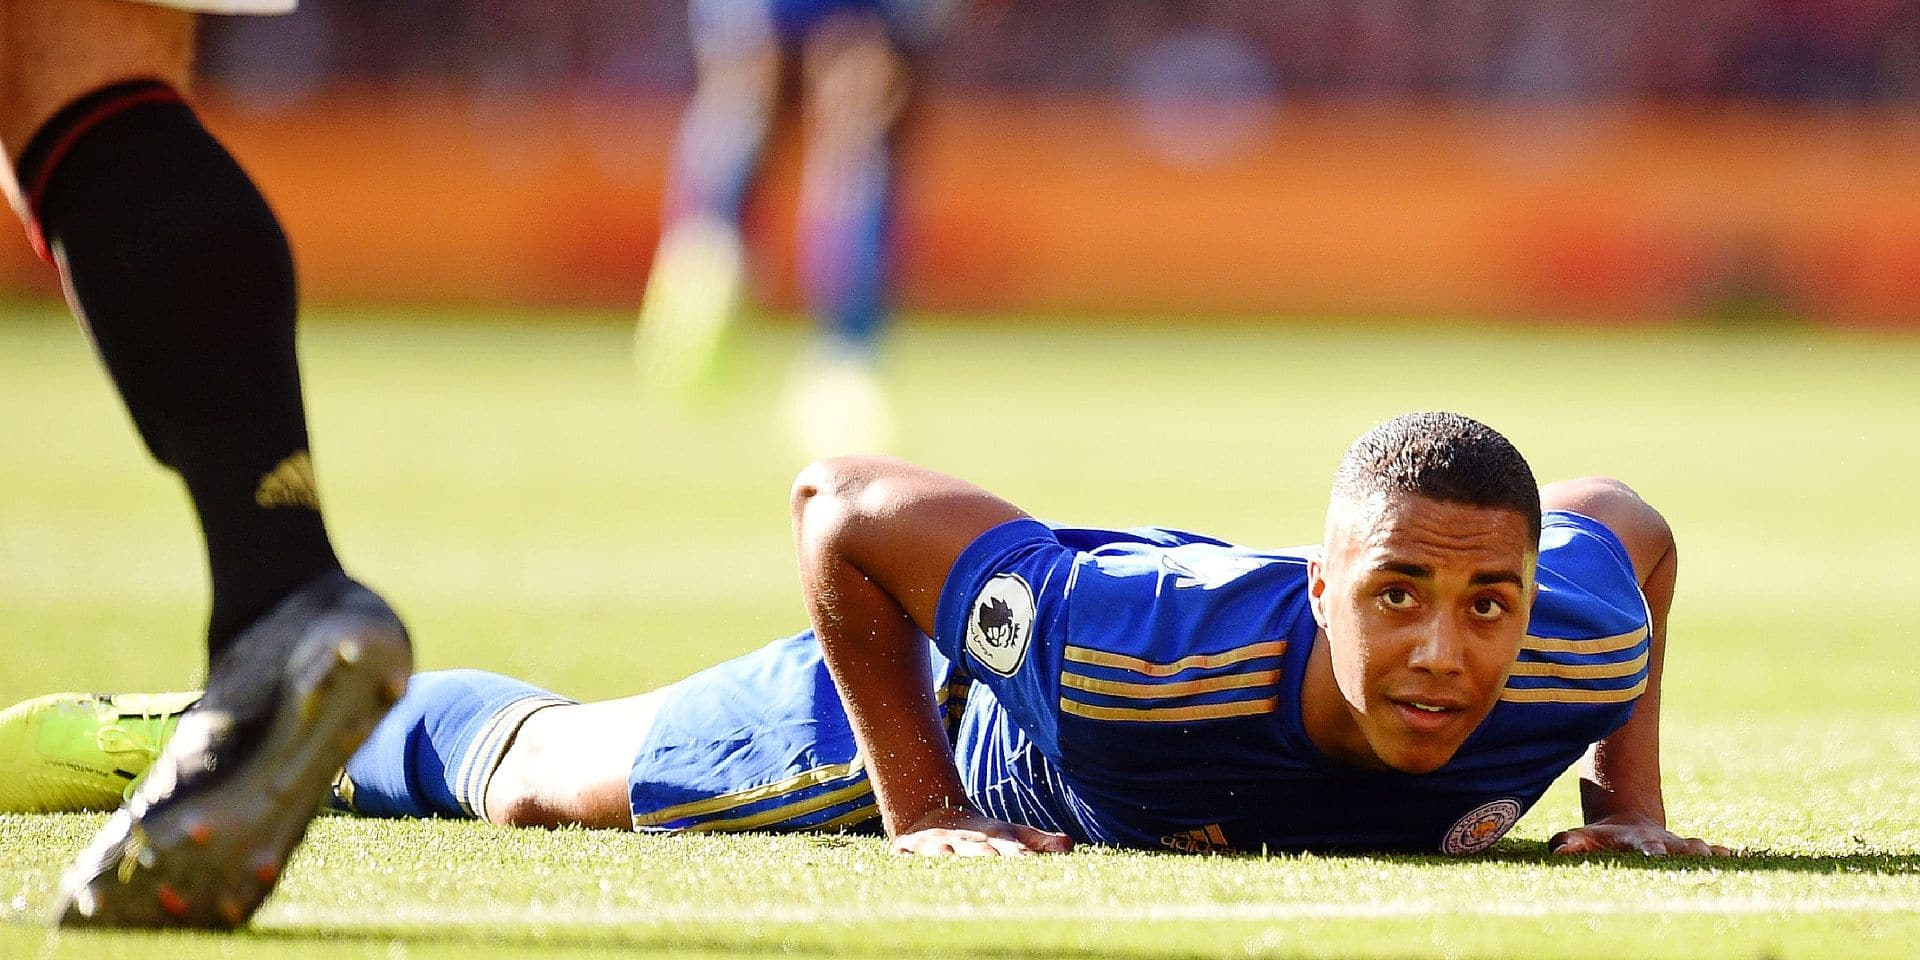 Leicester City's Belgian midfielder Youri Tielemans looks up during the English Premier League football match between Manchester United and Leicester City at Old Trafford in Manchester, north west England, on September 14, 2019. (Photo by Oli SCARFF / AFP) / RESTRICTED TO EDITORIAL USE. No use with unauthorized audio, video, data, fixture lists, club/league logos or 'live' services. Online in-match use limited to 120 images. An additional 40 images may be used in extra time. No video emulation. Social media in-match use limited to 120 images. An additional 40 images may be used in extra time. No use in betting publications, games or single club/league/player publications. /